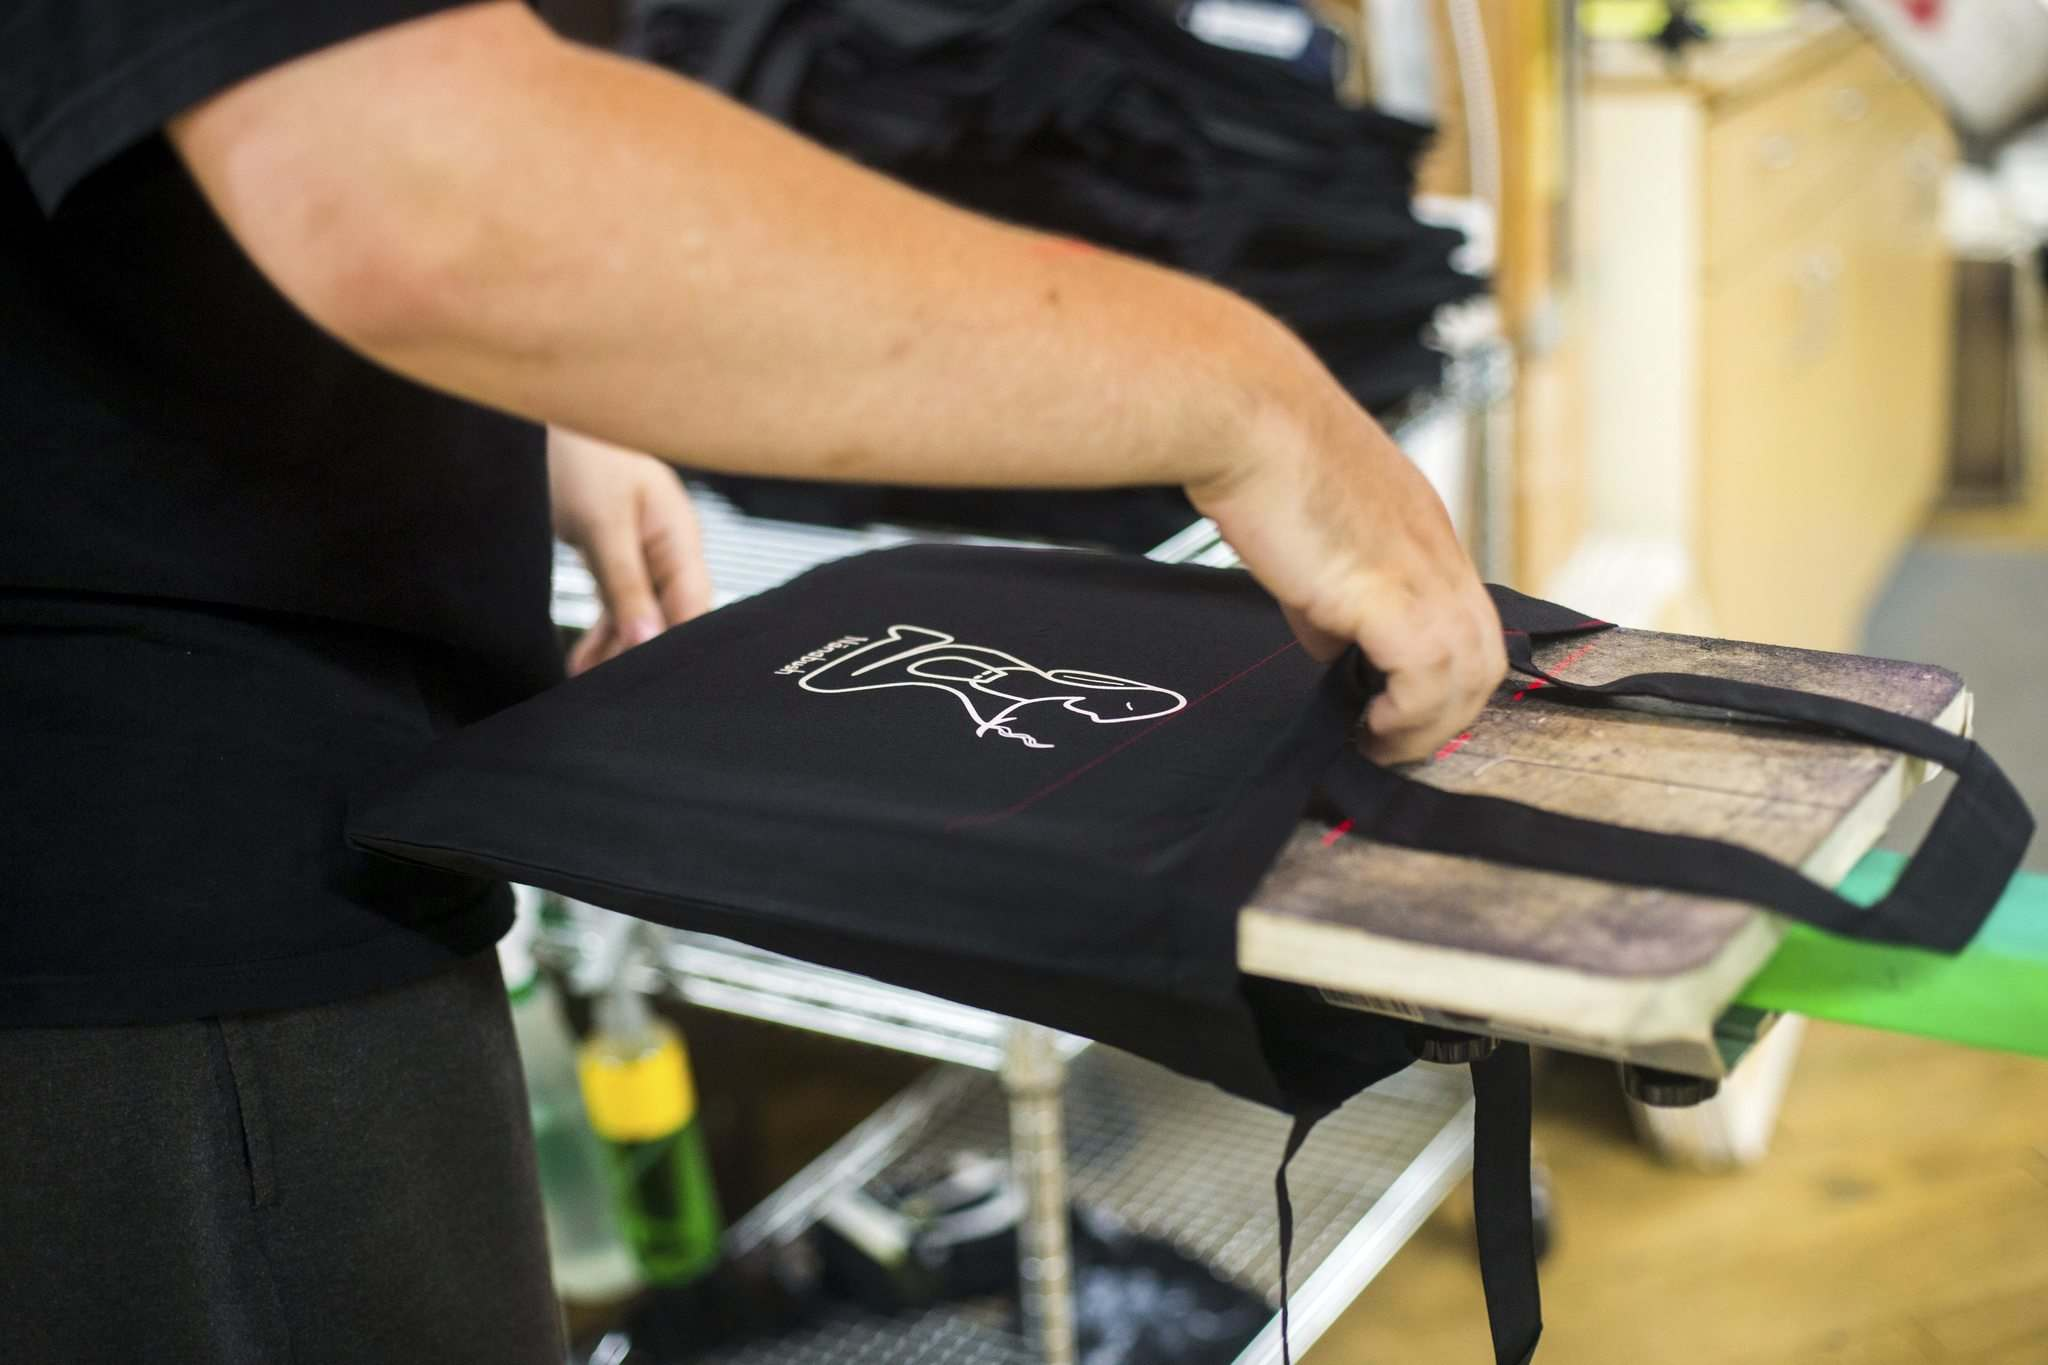 MIKAELA MACKENZIE / WINNIPEG FREE PRESS</p><p>Riley Taylor works on printing tote bags at the Floodway Print Co. in their new space in the exchange district in Winnipeg on Thursday, Aug. 16, 2018.</p><p>Winnipeg Free Press 2018.</p>